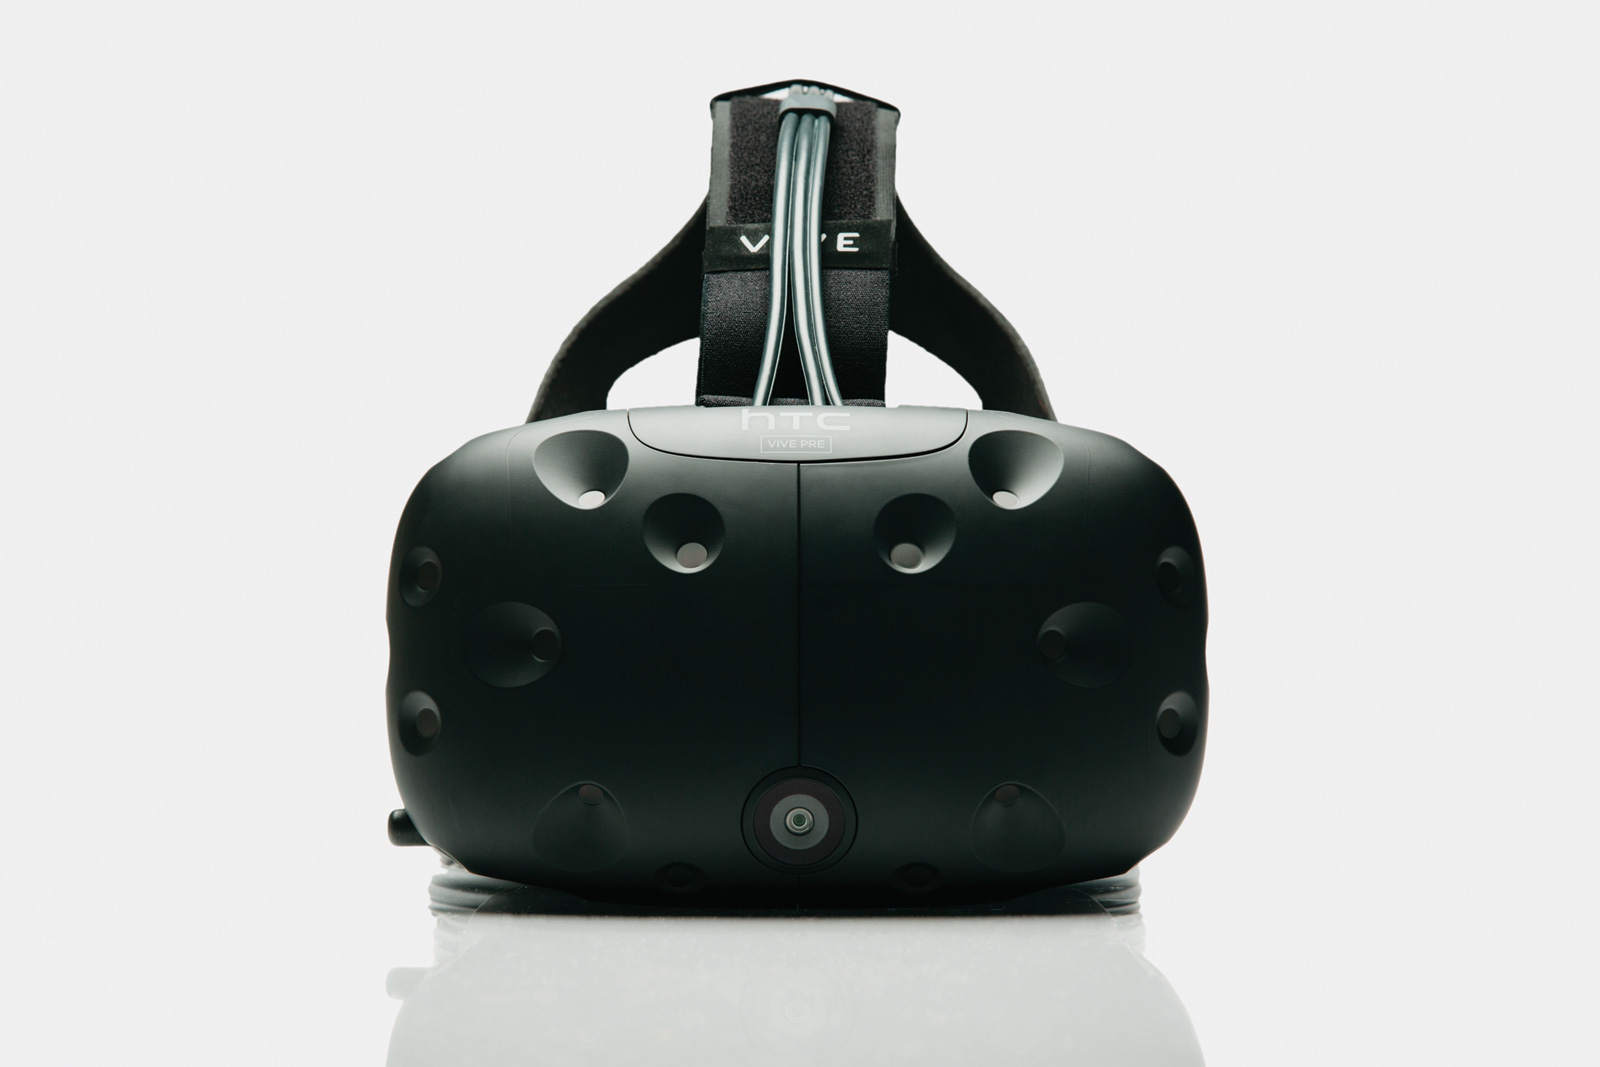 Vive VR HMD in its shipping version.